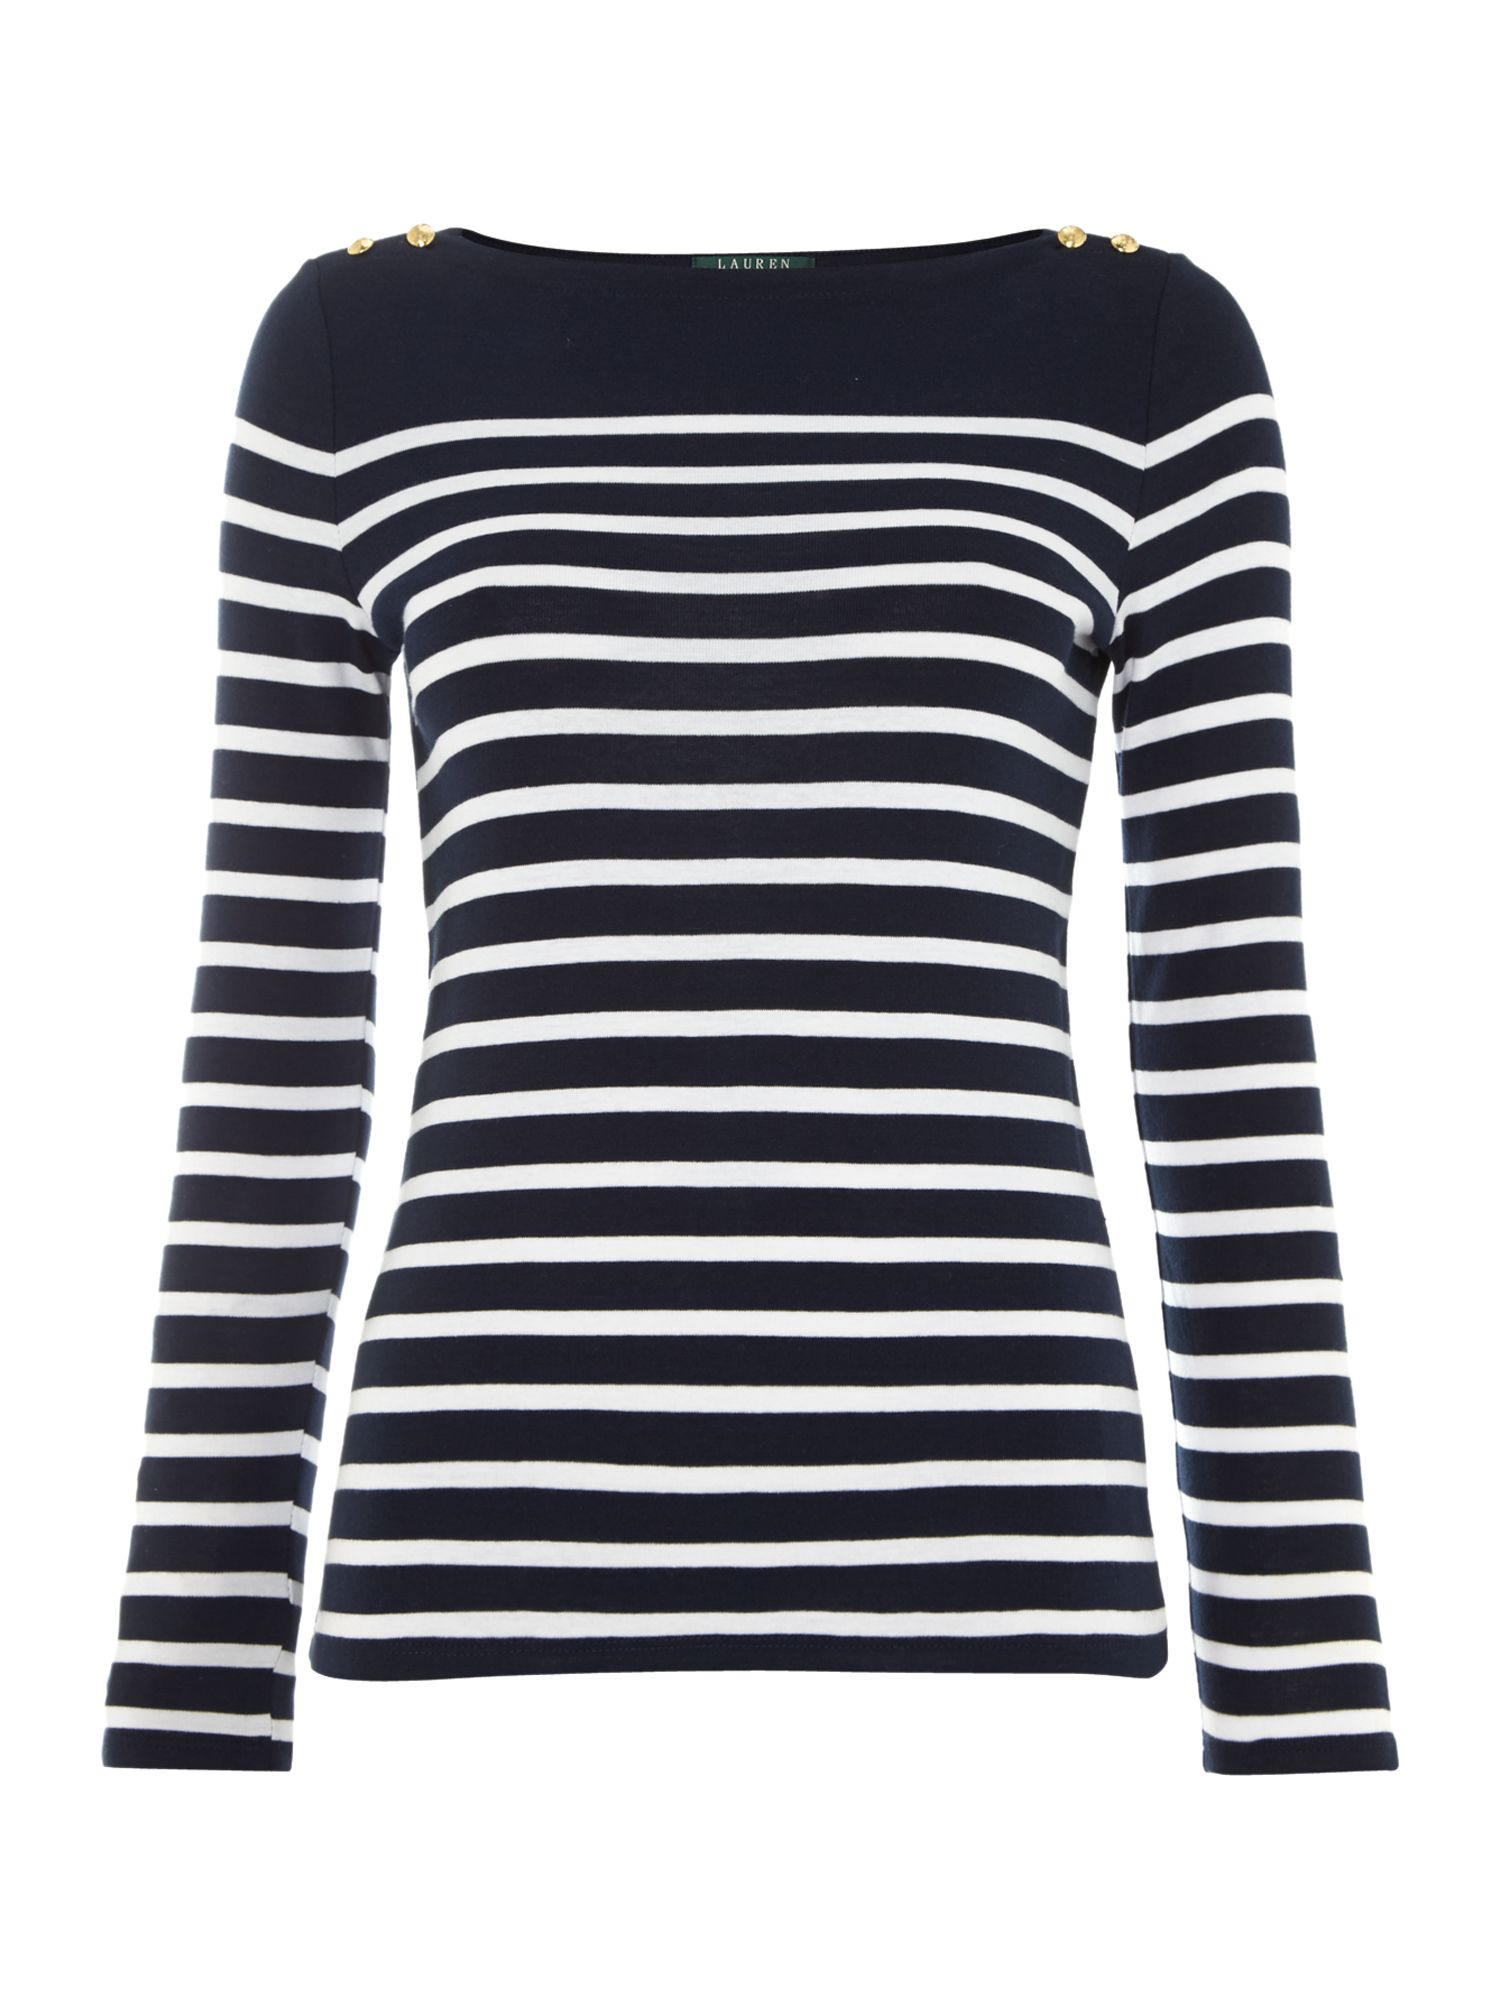 Blue And White Striped Tops